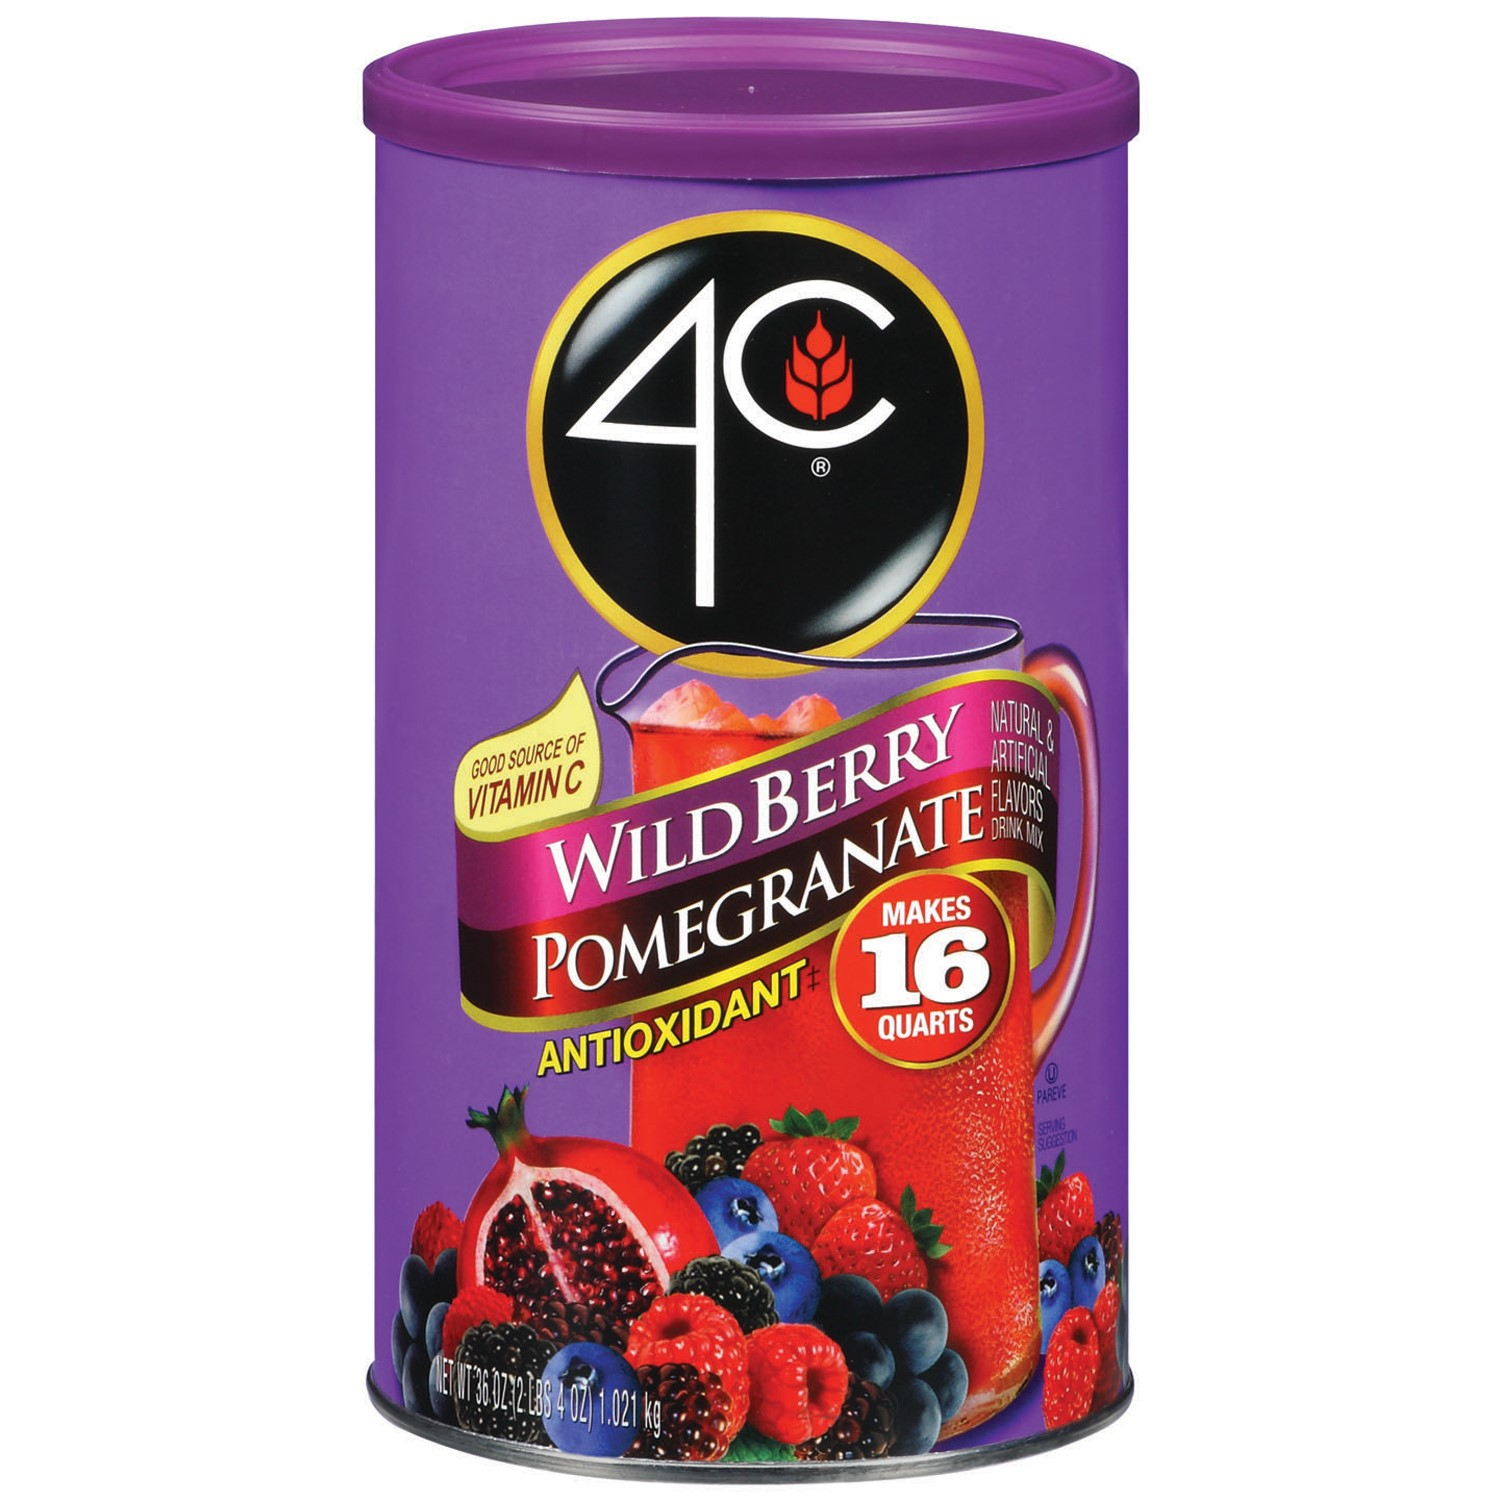 4C Antioxidant Drink Mix, Wild Berry Pomegranate, 36 Oz, 1 Count